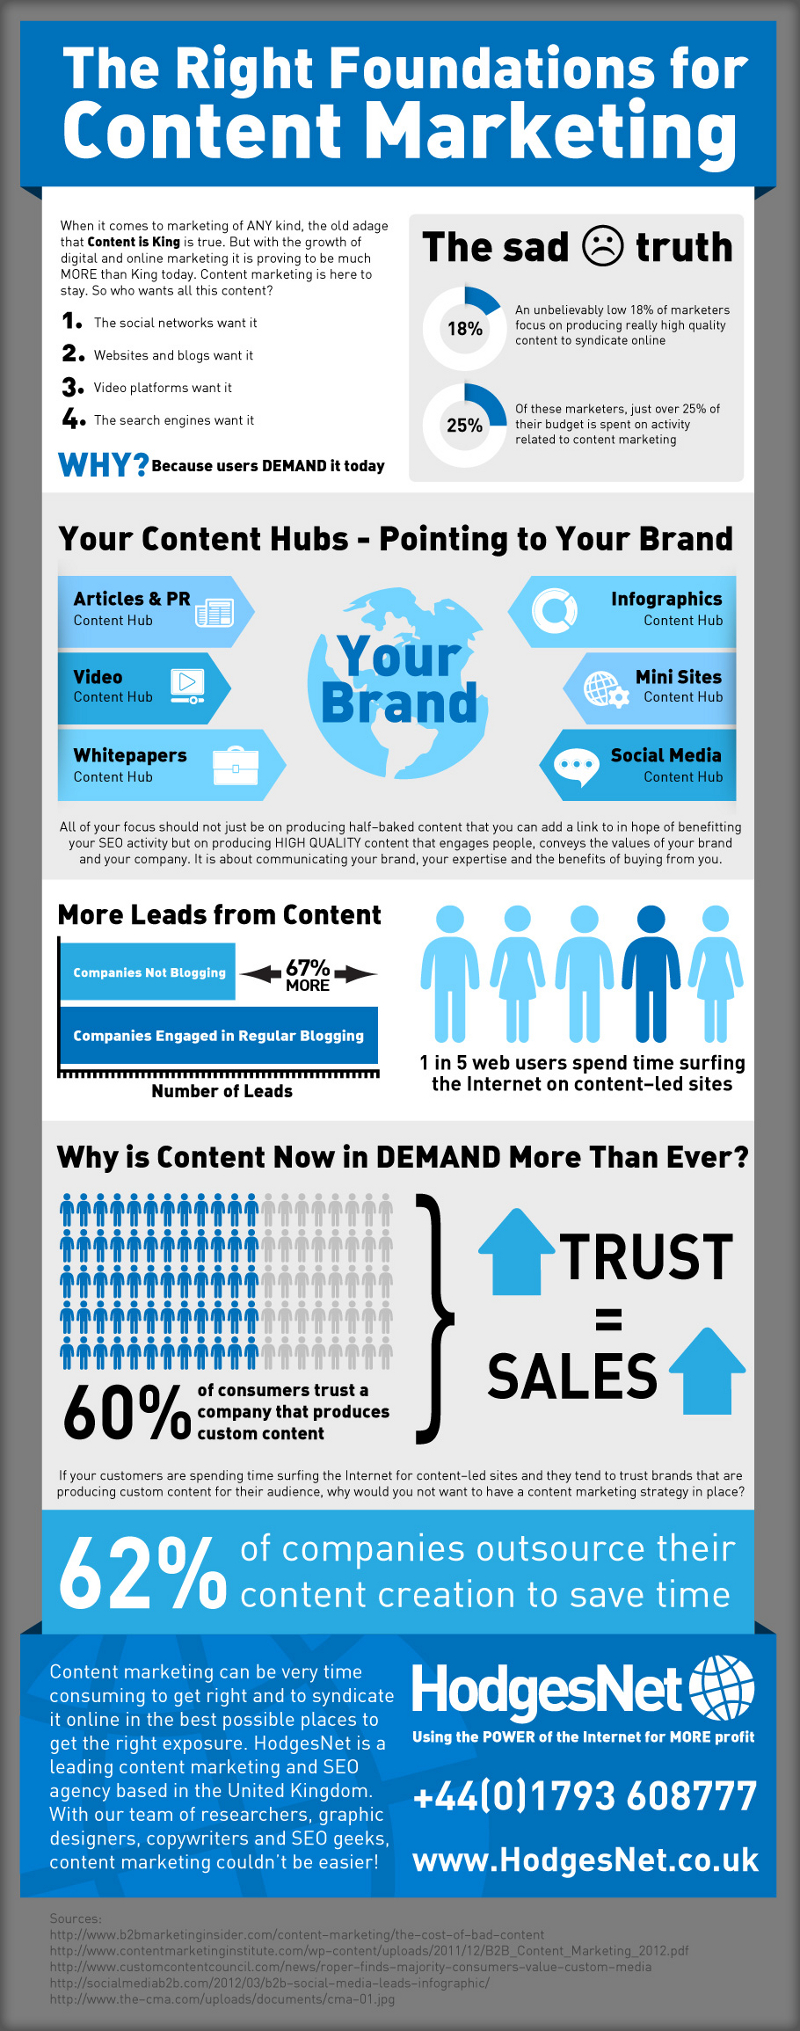 Strategies for Content Marketing